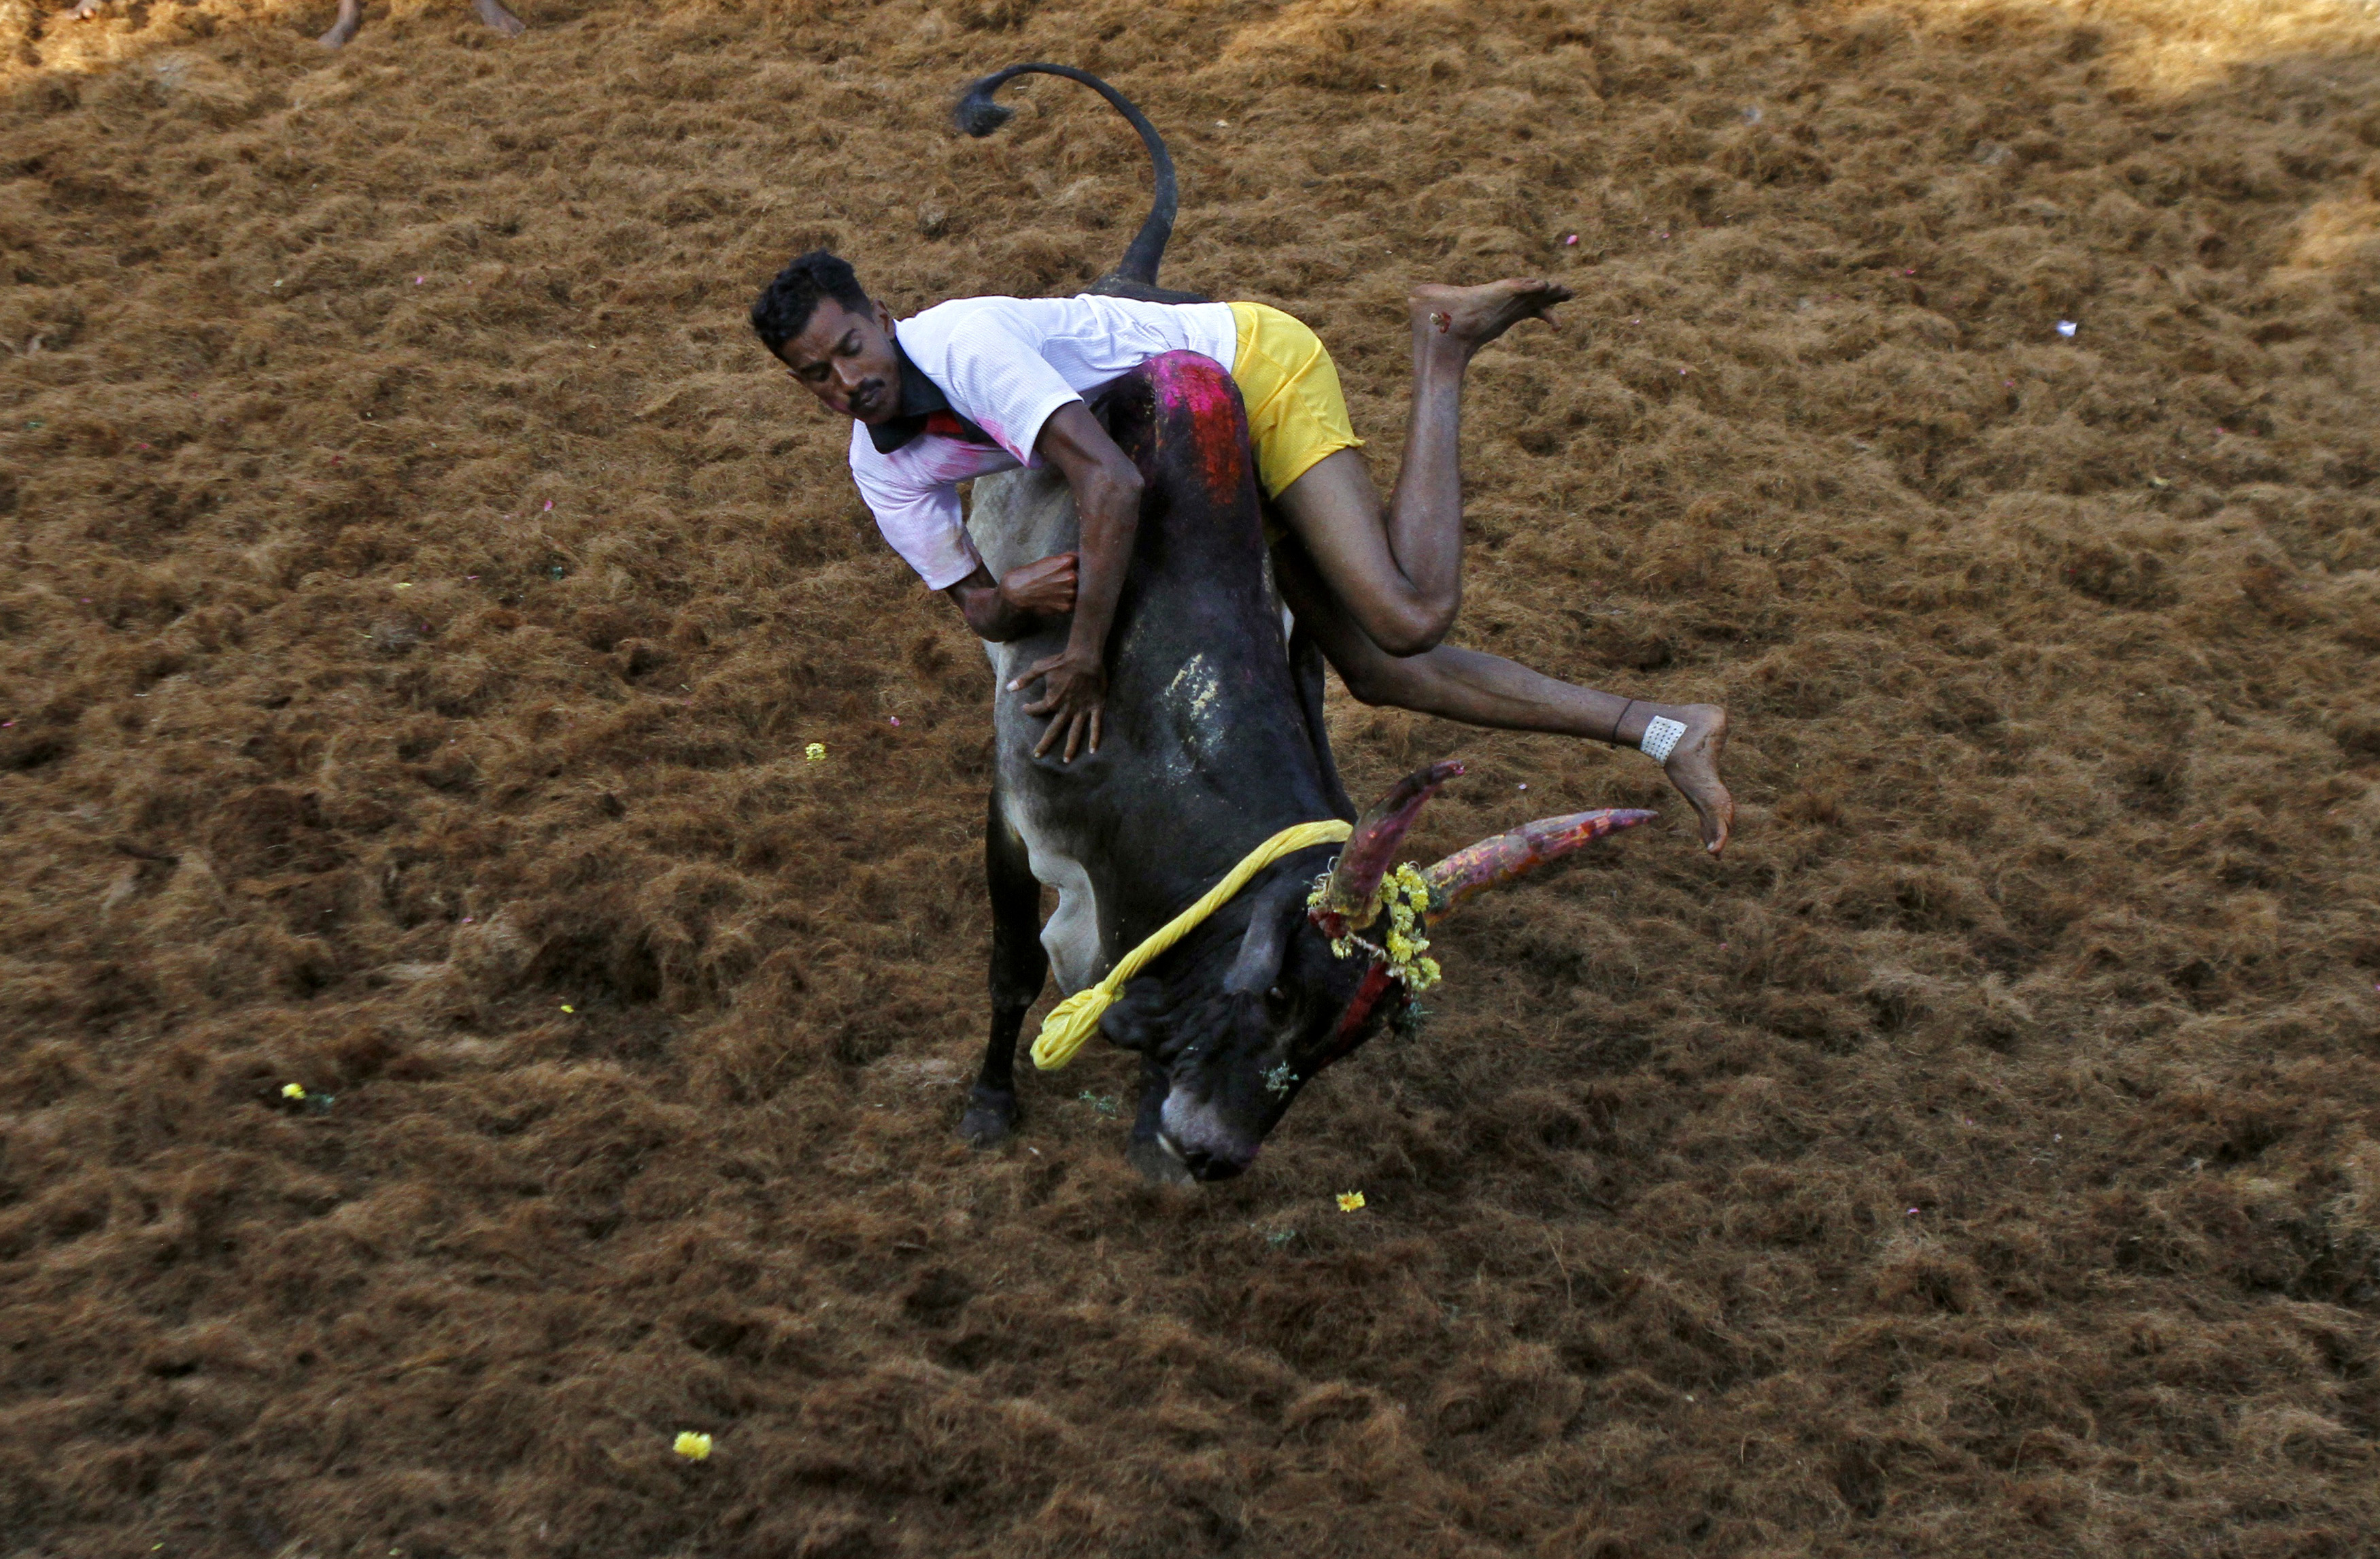 A villager tries to control a bull during a bull-taming festival on the outskirts of Madurai town, about 500 km (310 miles) from the southern Indian city of Chennai January 16, 2013. The annual festival is part of south India's harvest festival of Pongal. REUTERS/Babu (INDIA - Tags: RELIGION ANNIVERSARY ANIMALS) - RTR3CIYC